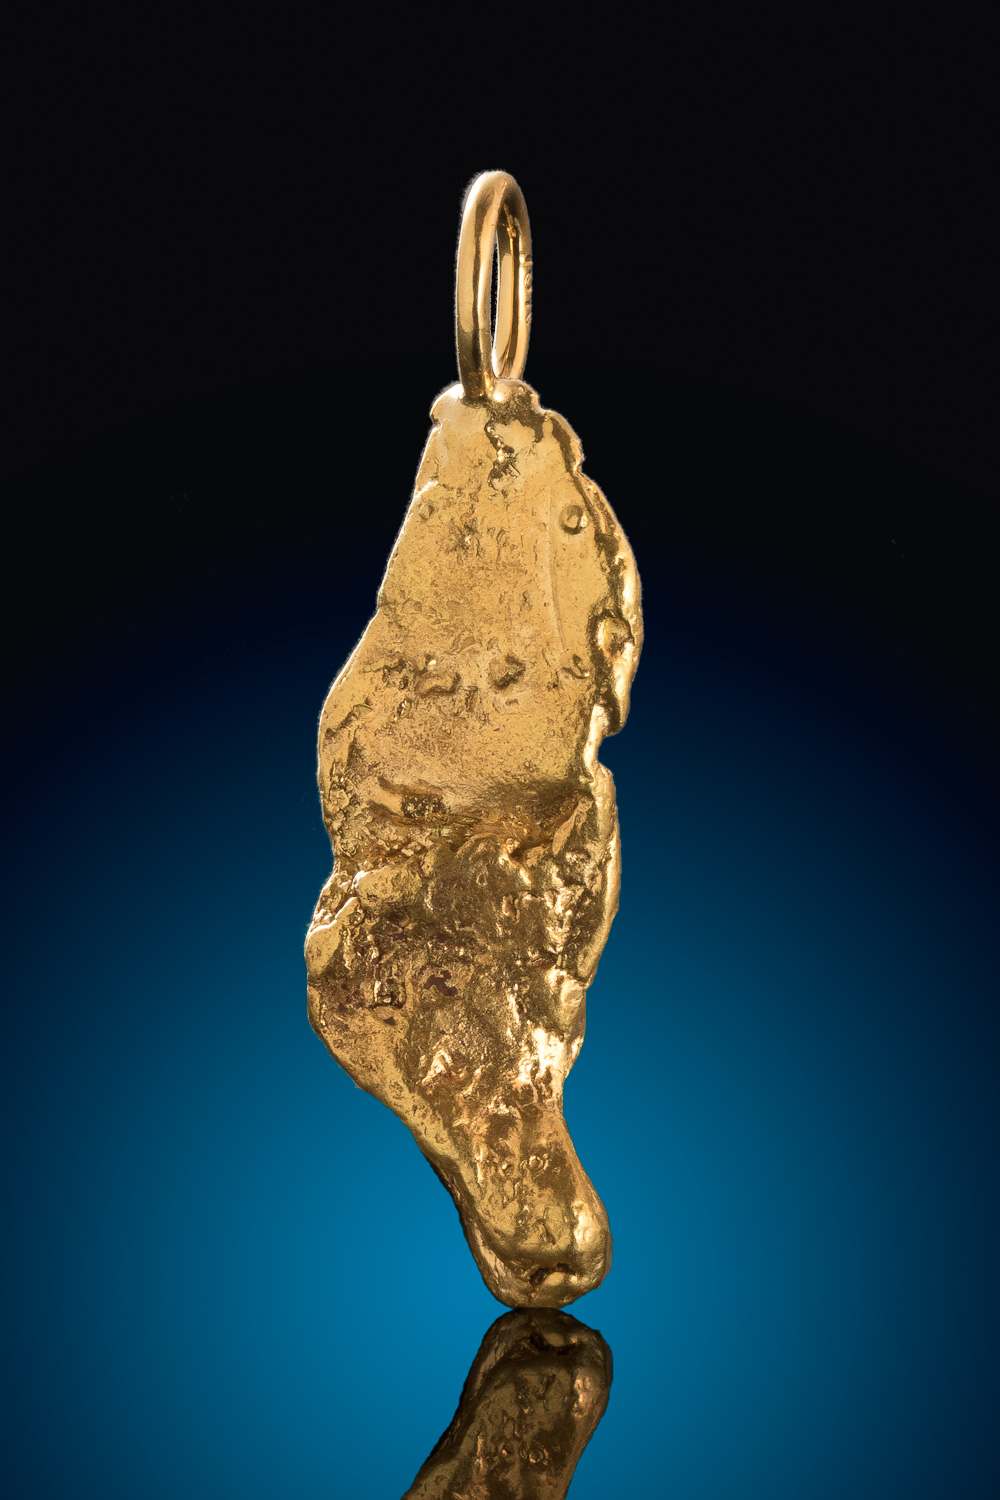 Mike's Choice for a Natural Gold Nugget Pendant - Alaska